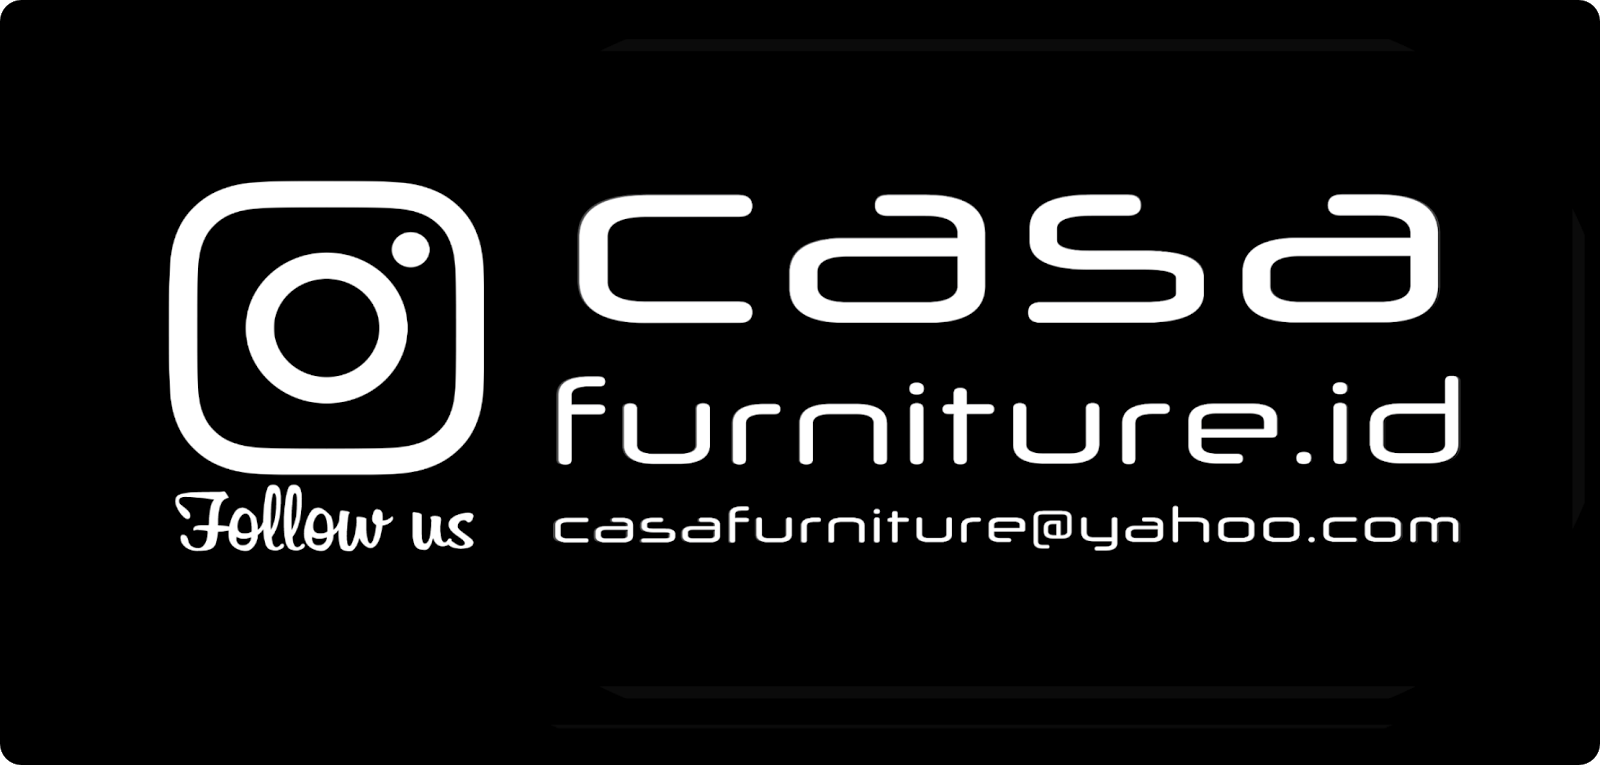 IG @Casafurniture.id